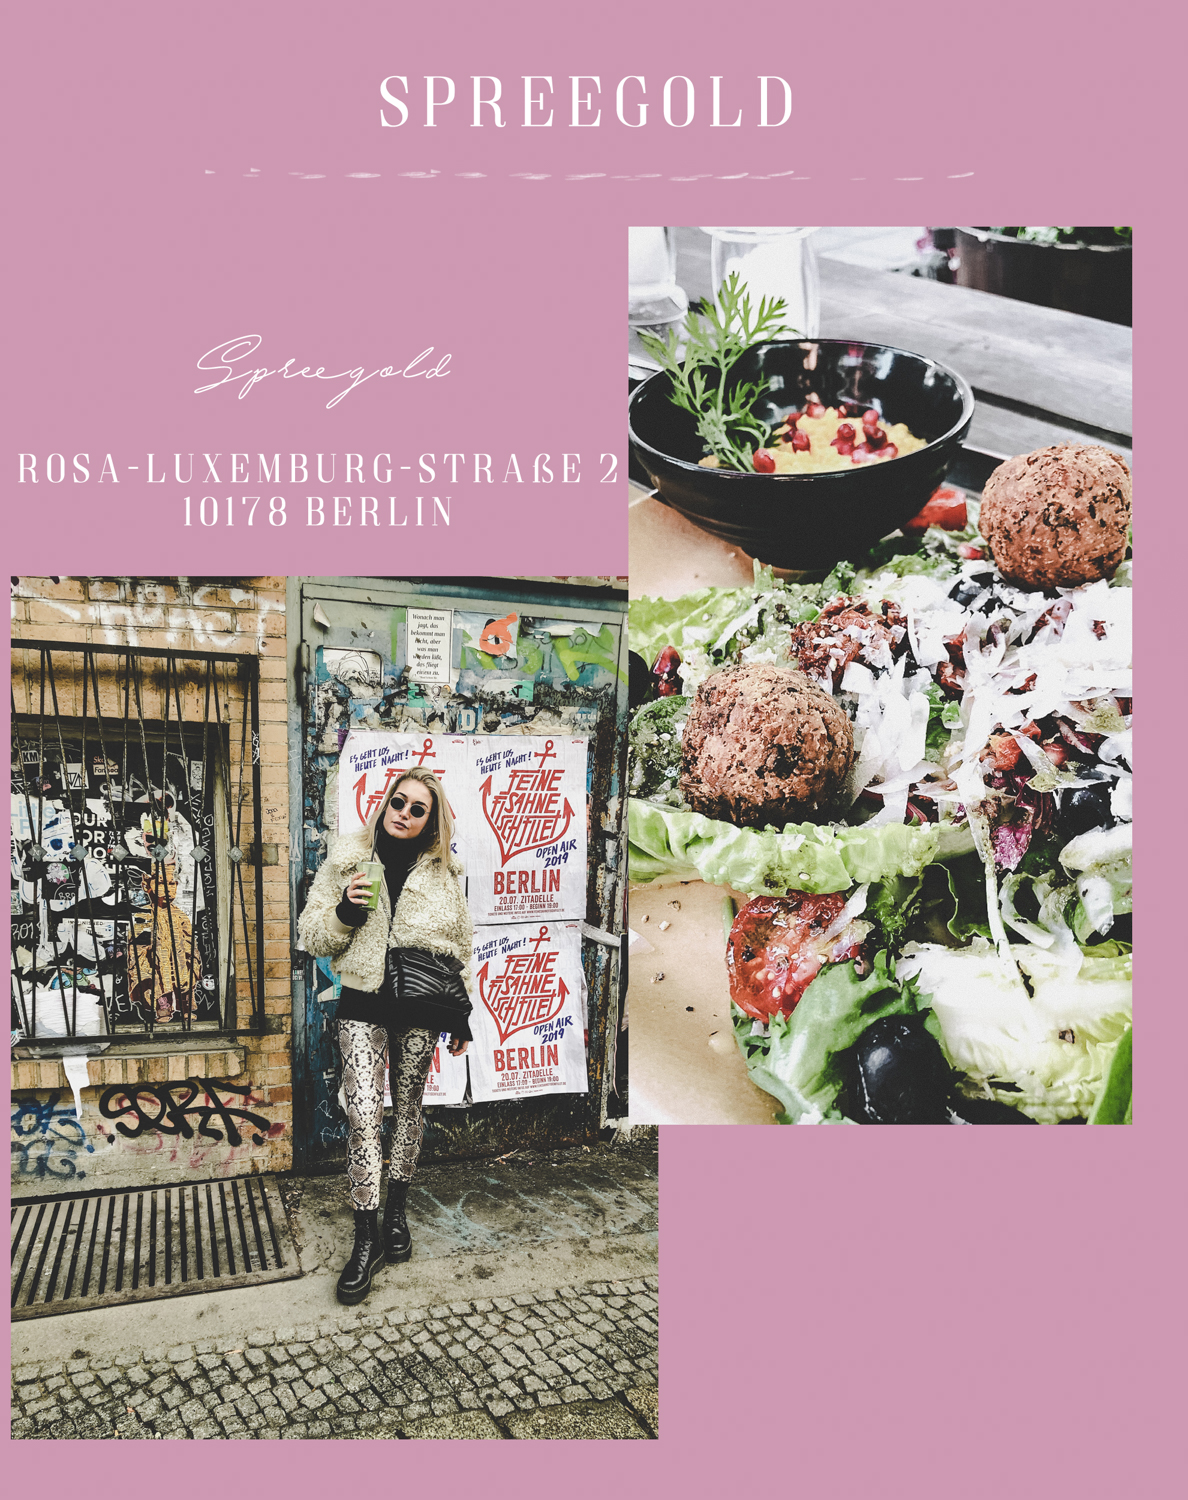 Spreegold-Cafe-Dinner-BErlin-Blogger-Lunch-Healthy-Food-